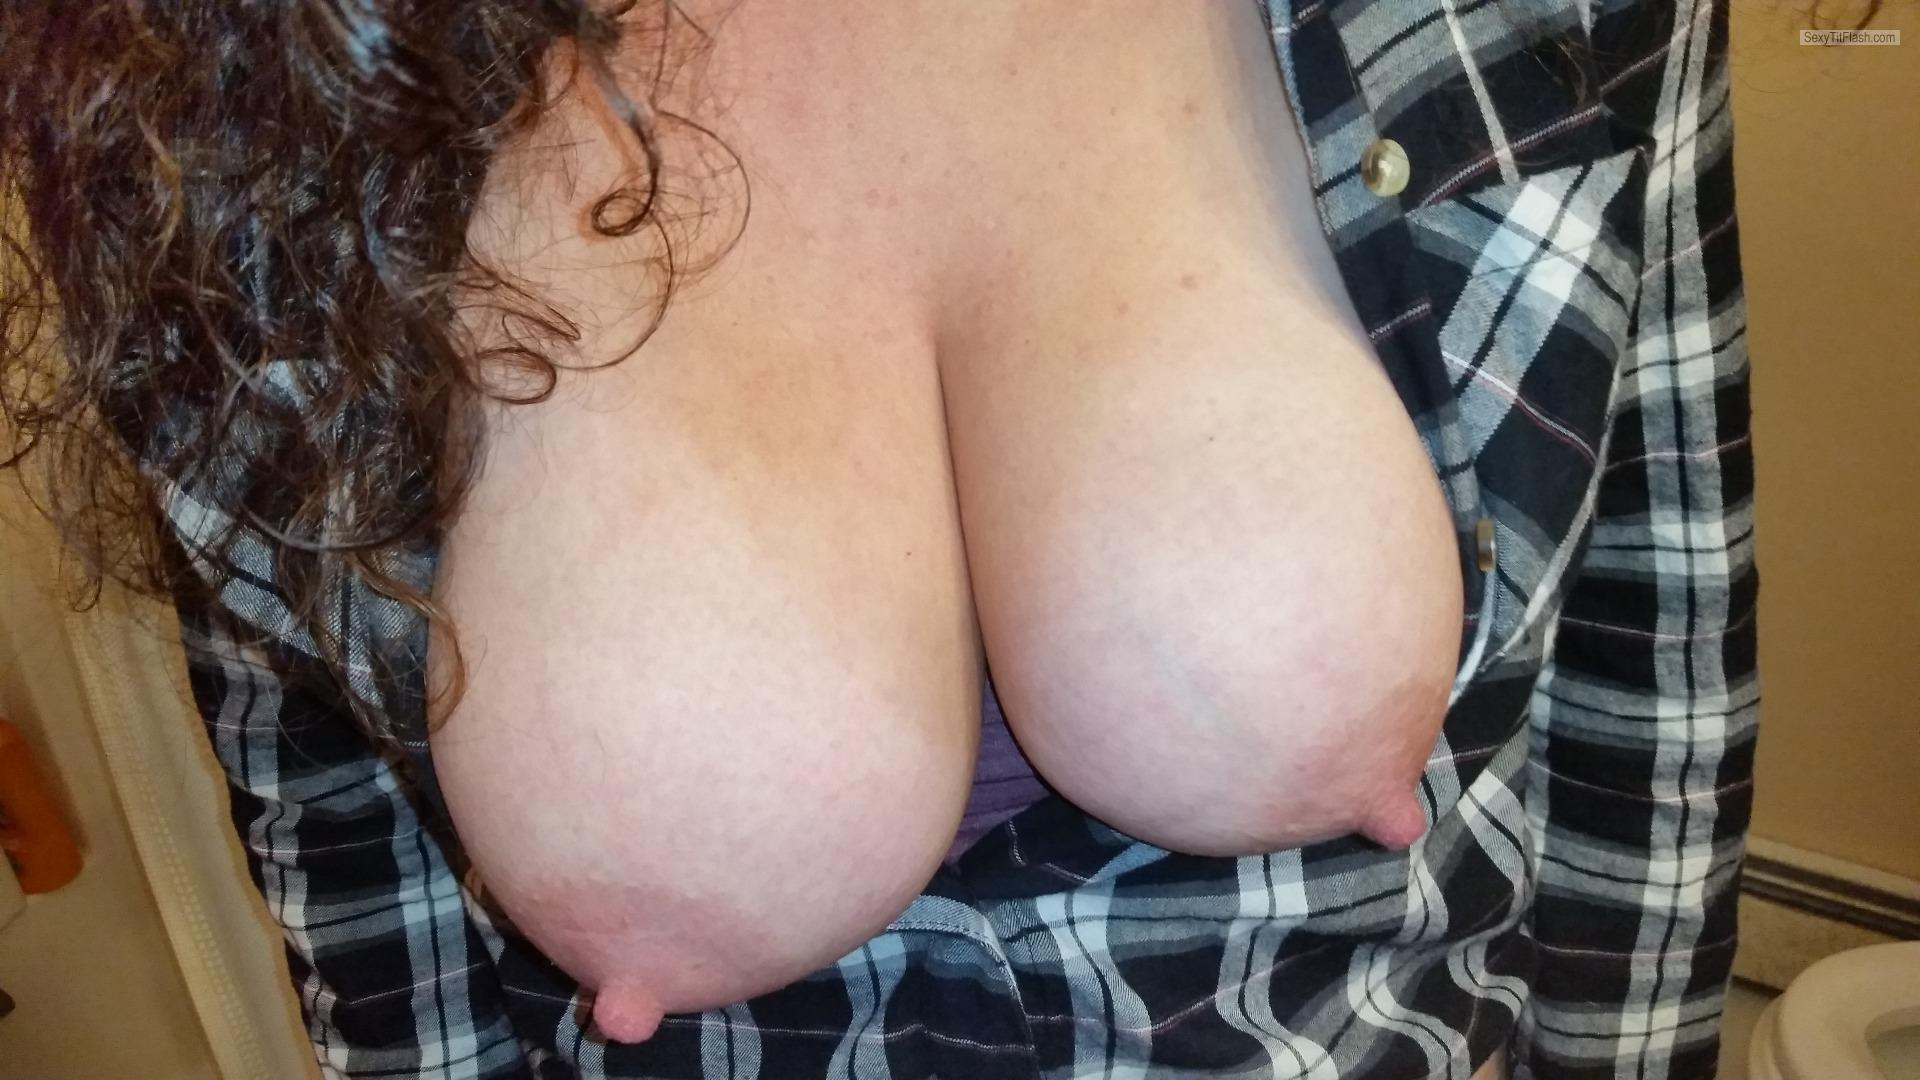 Big Tits Of My Wife Hot Tits